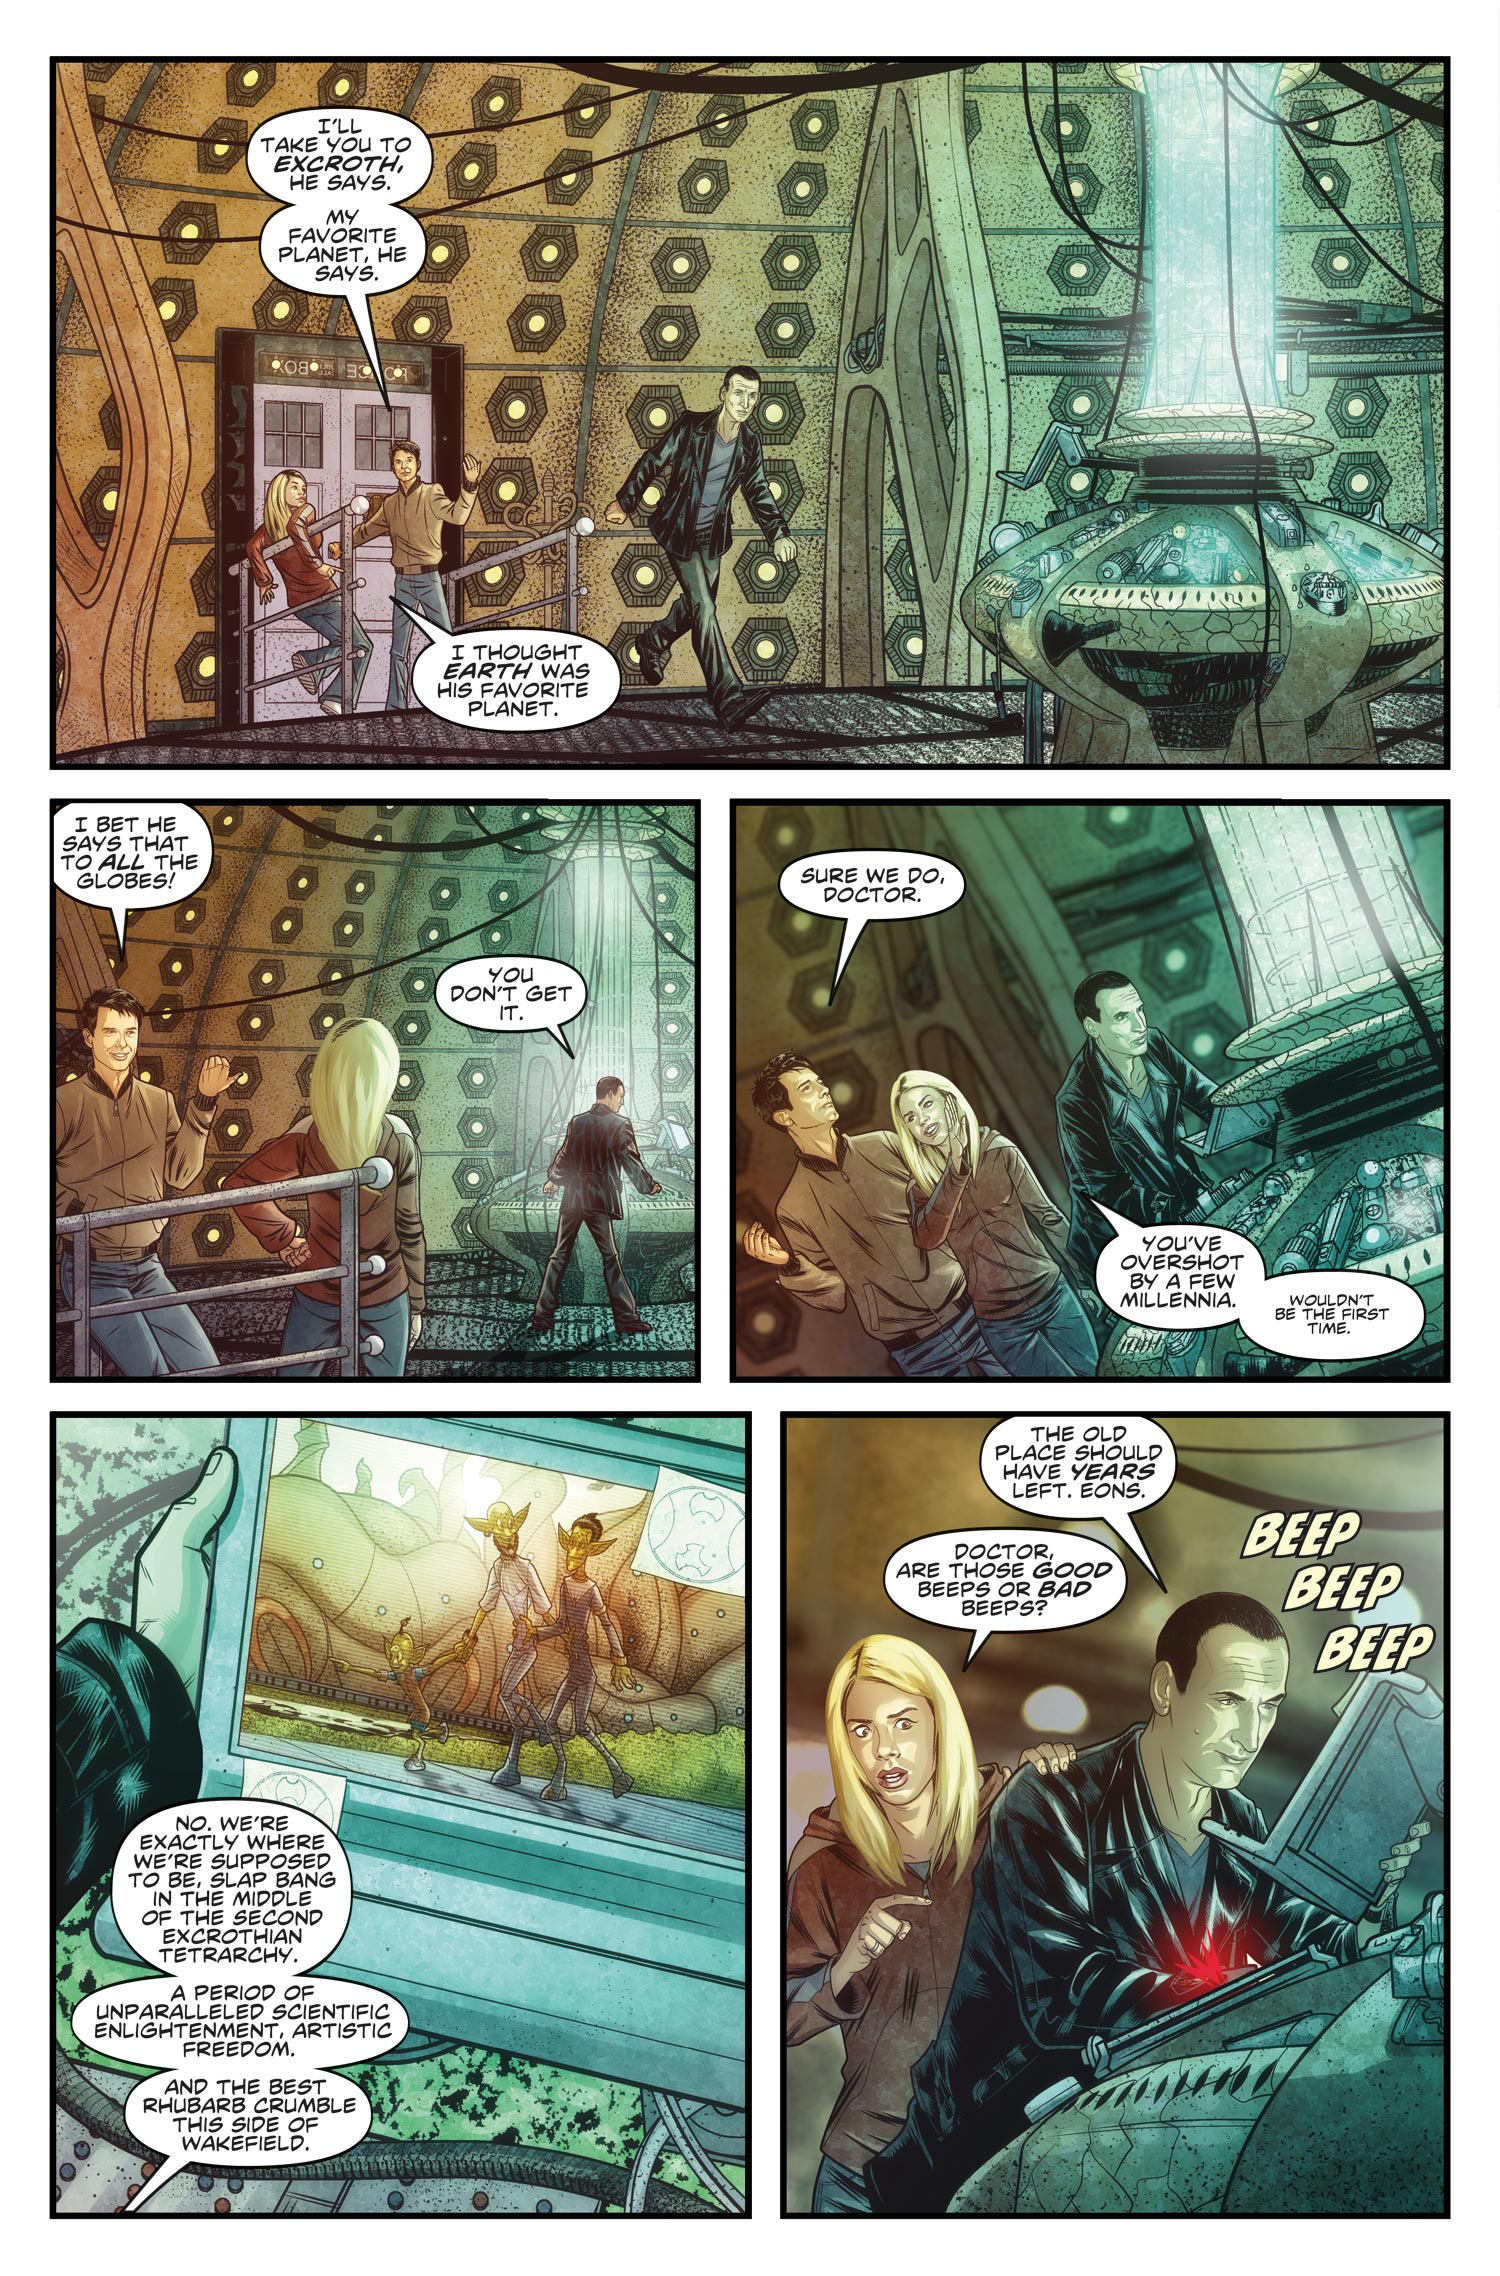 THE NINTH DOCTOR VOL. 1: WEAPONS OF PAST DESTRUCTION (Credit: Titan)